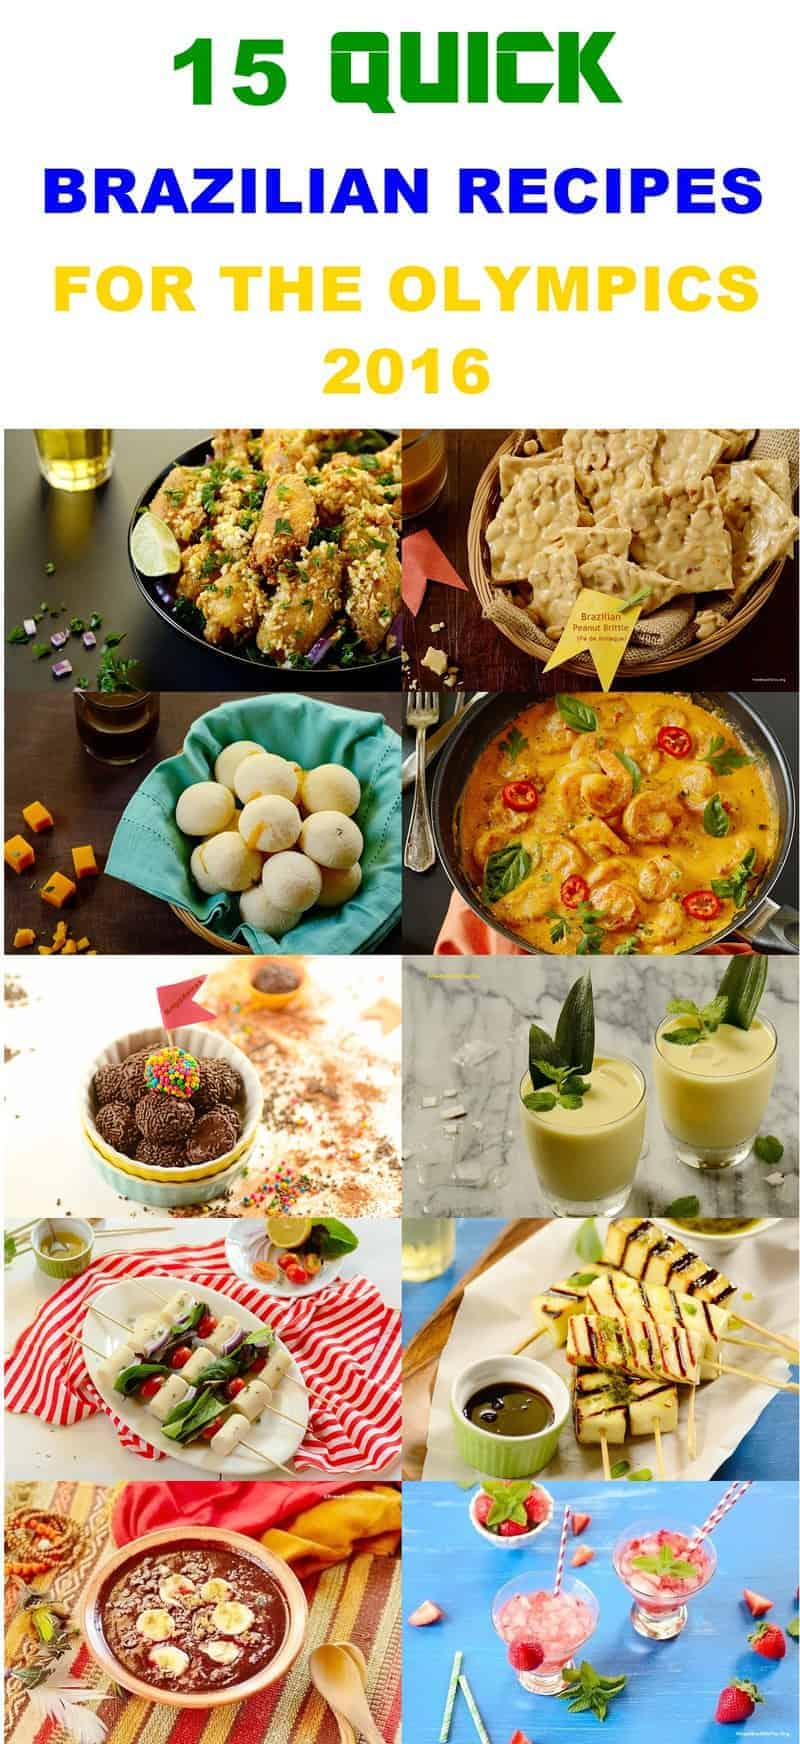 15 quick brazilian recipes for the olympics 2016 easy and delish 15 quick brazilian recipes for the olympics 2016 forumfinder Images